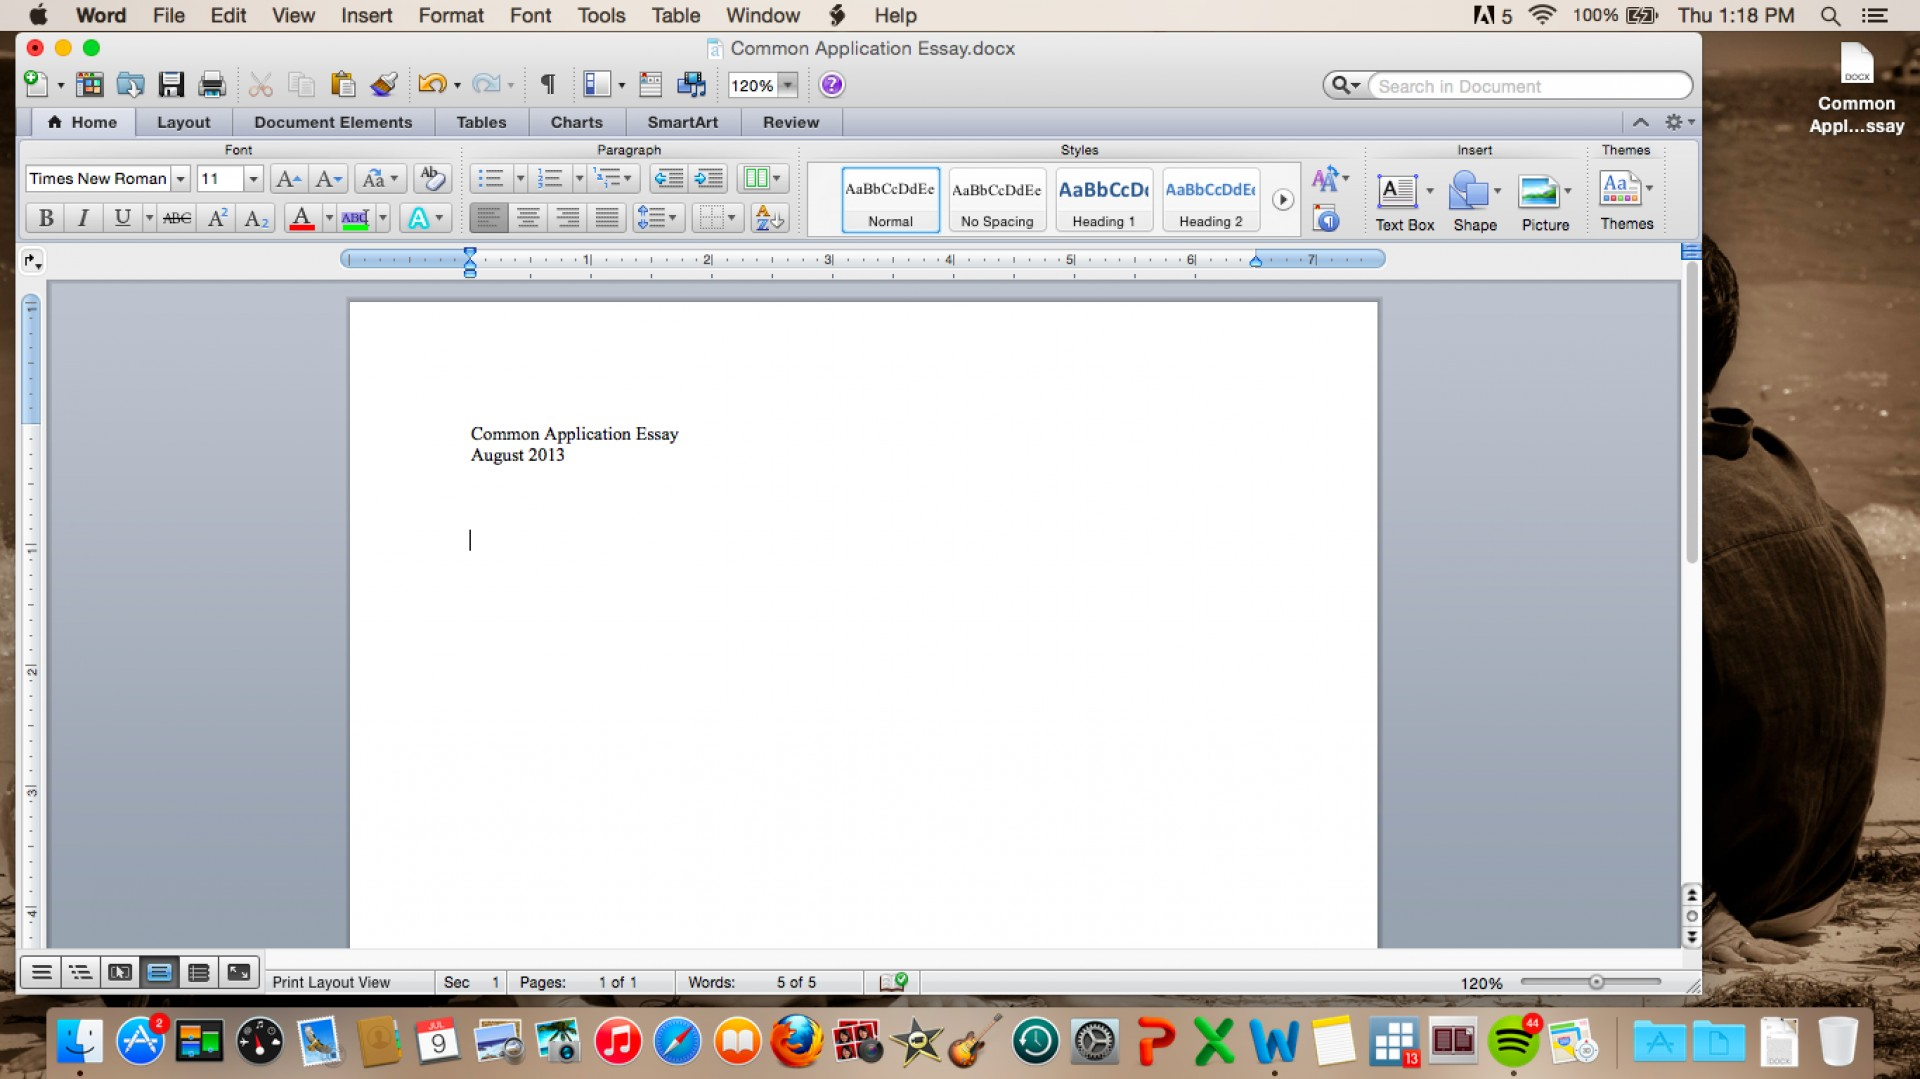 009 Essay Example Screen Shot 2015 09 At 1 22 Pm Harvard Imposing Supplement Word Count Supplemental Guide Format 1920